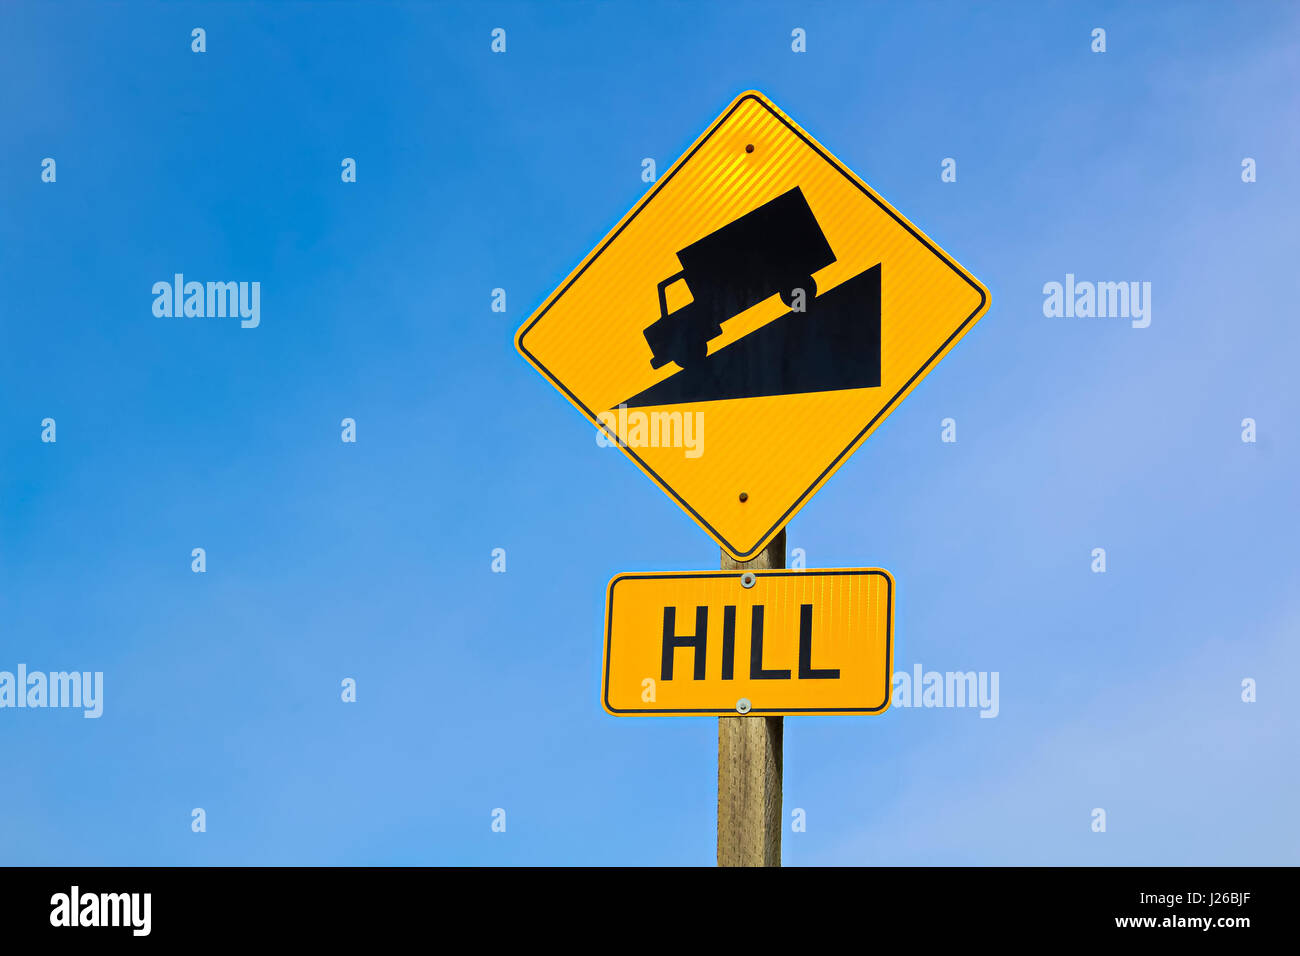 Approaching hill sign along highway. - Stock Image